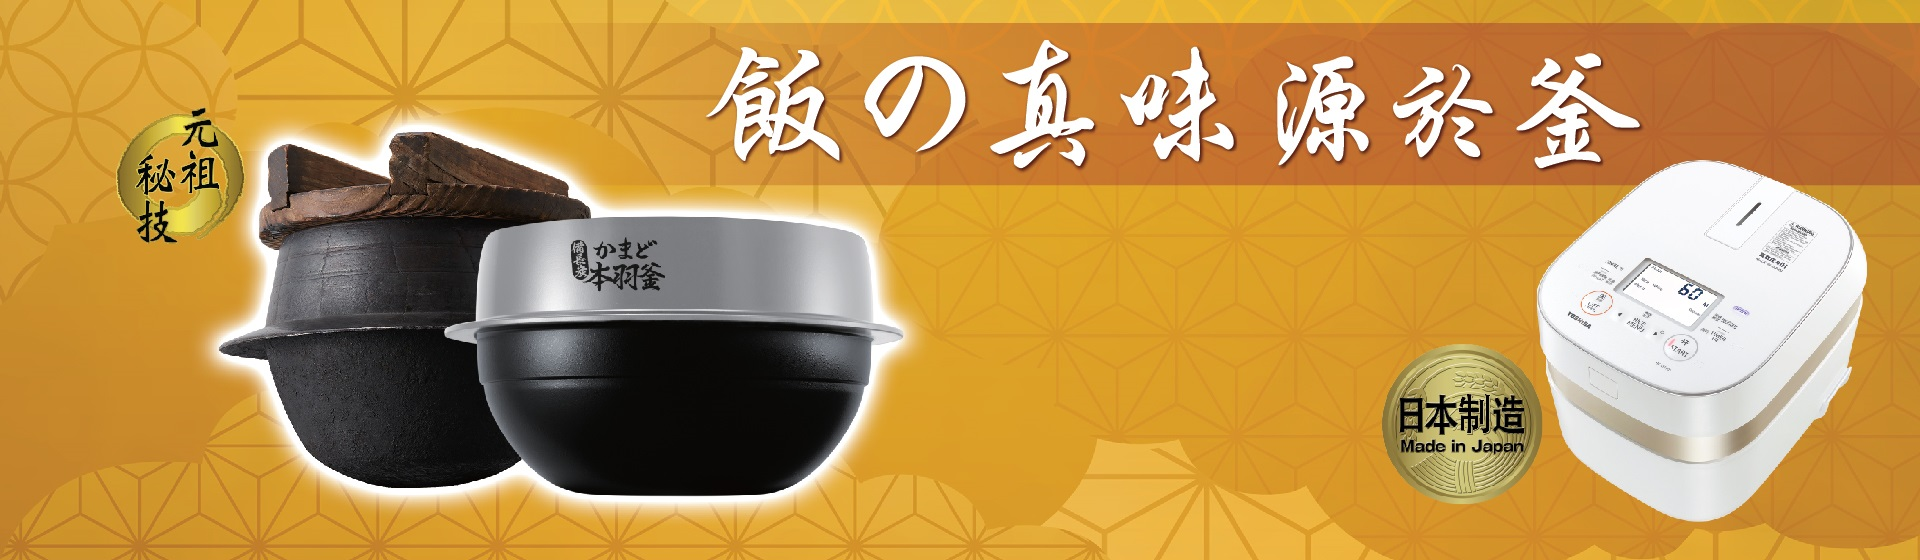 rice cooker banner